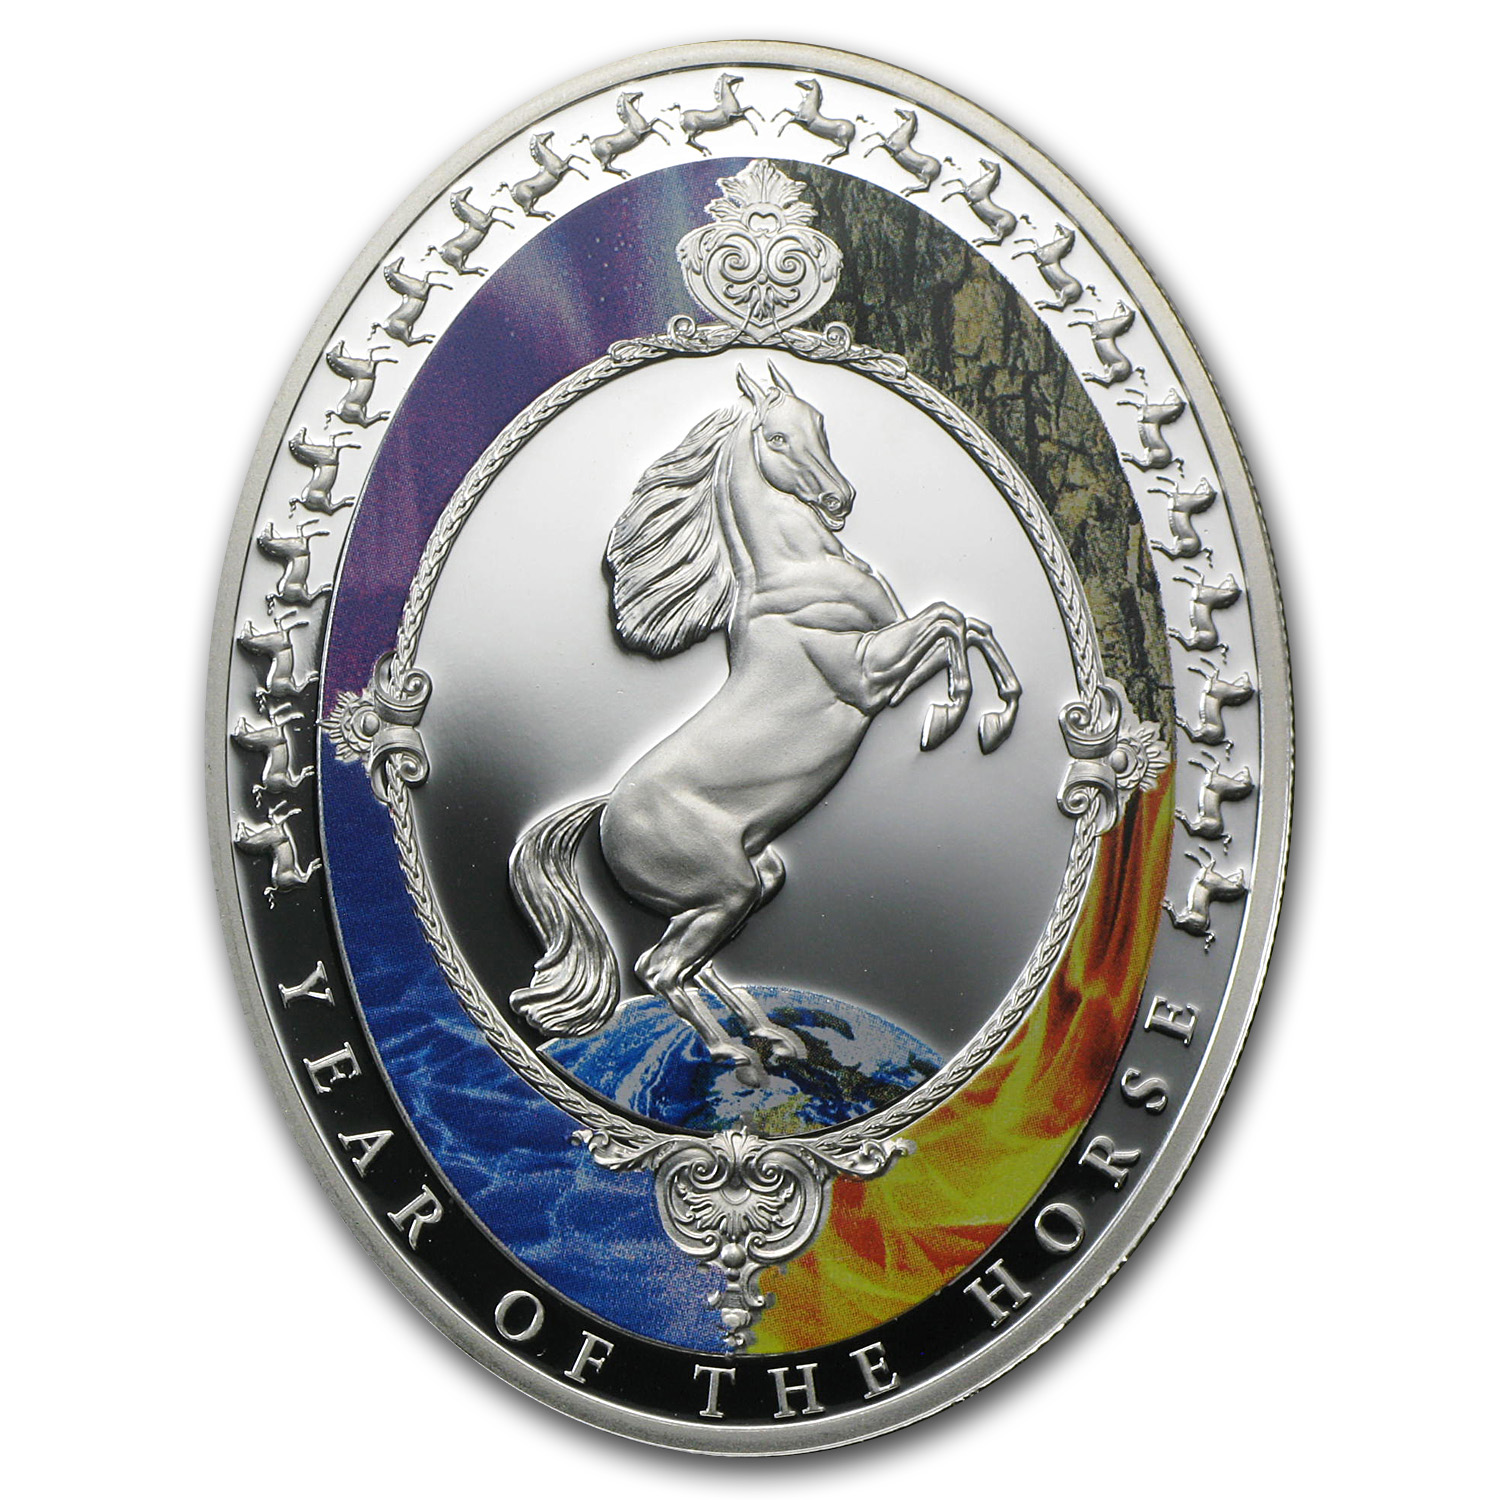 2014 1 oz Silver Year of the Horse Elements Proof (Oval)